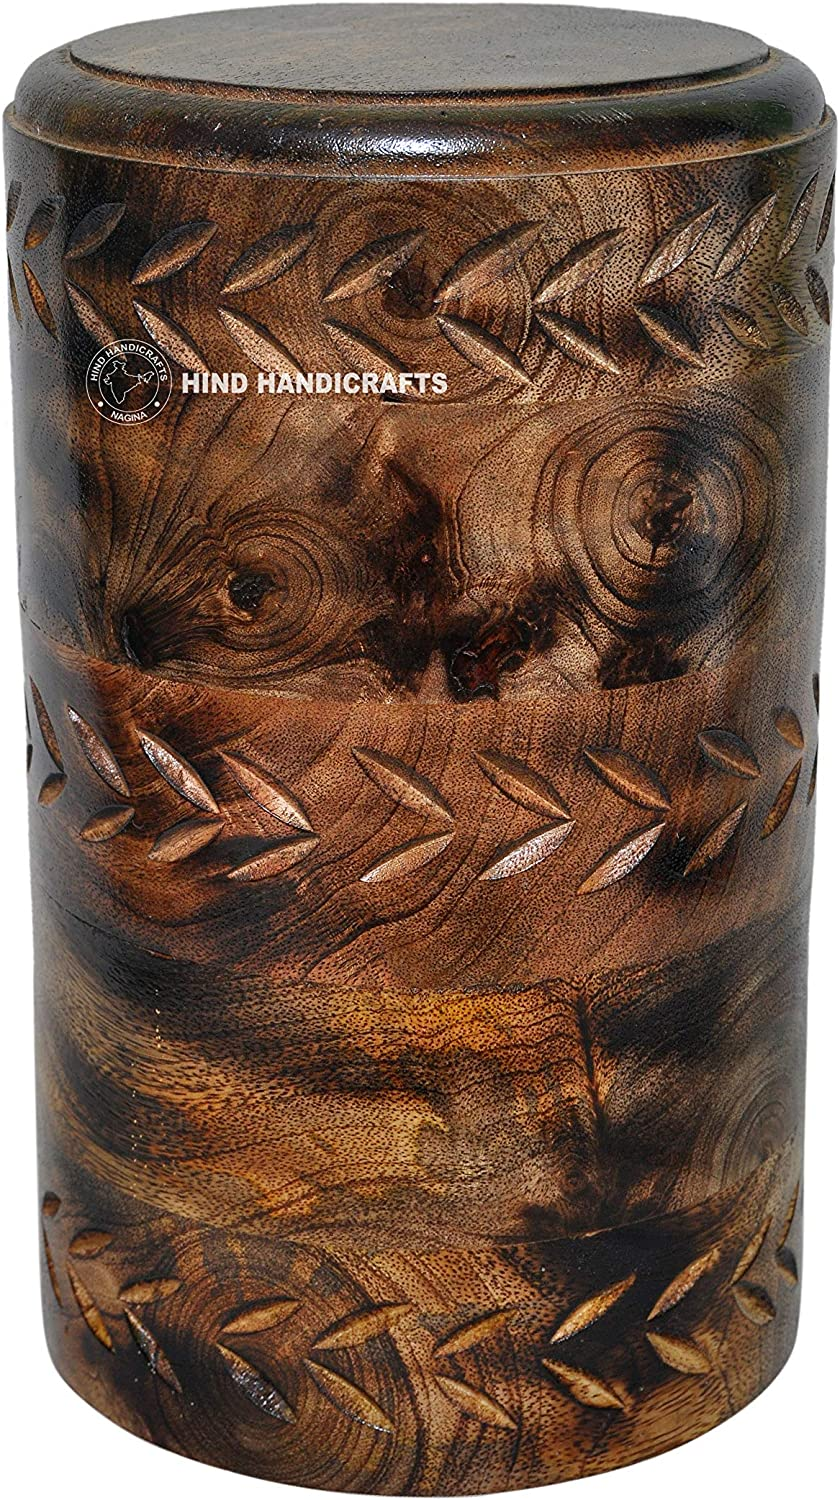 Hind Handicrafts Round Wooden Engraved Urns for Human Ashes Adult - Wooden Box Rosewood Cremation Urns for Ashes - Burial Urns - Funeral Urns Large (11.5 x 6.5 x 6.5 Inches, Antique 1)